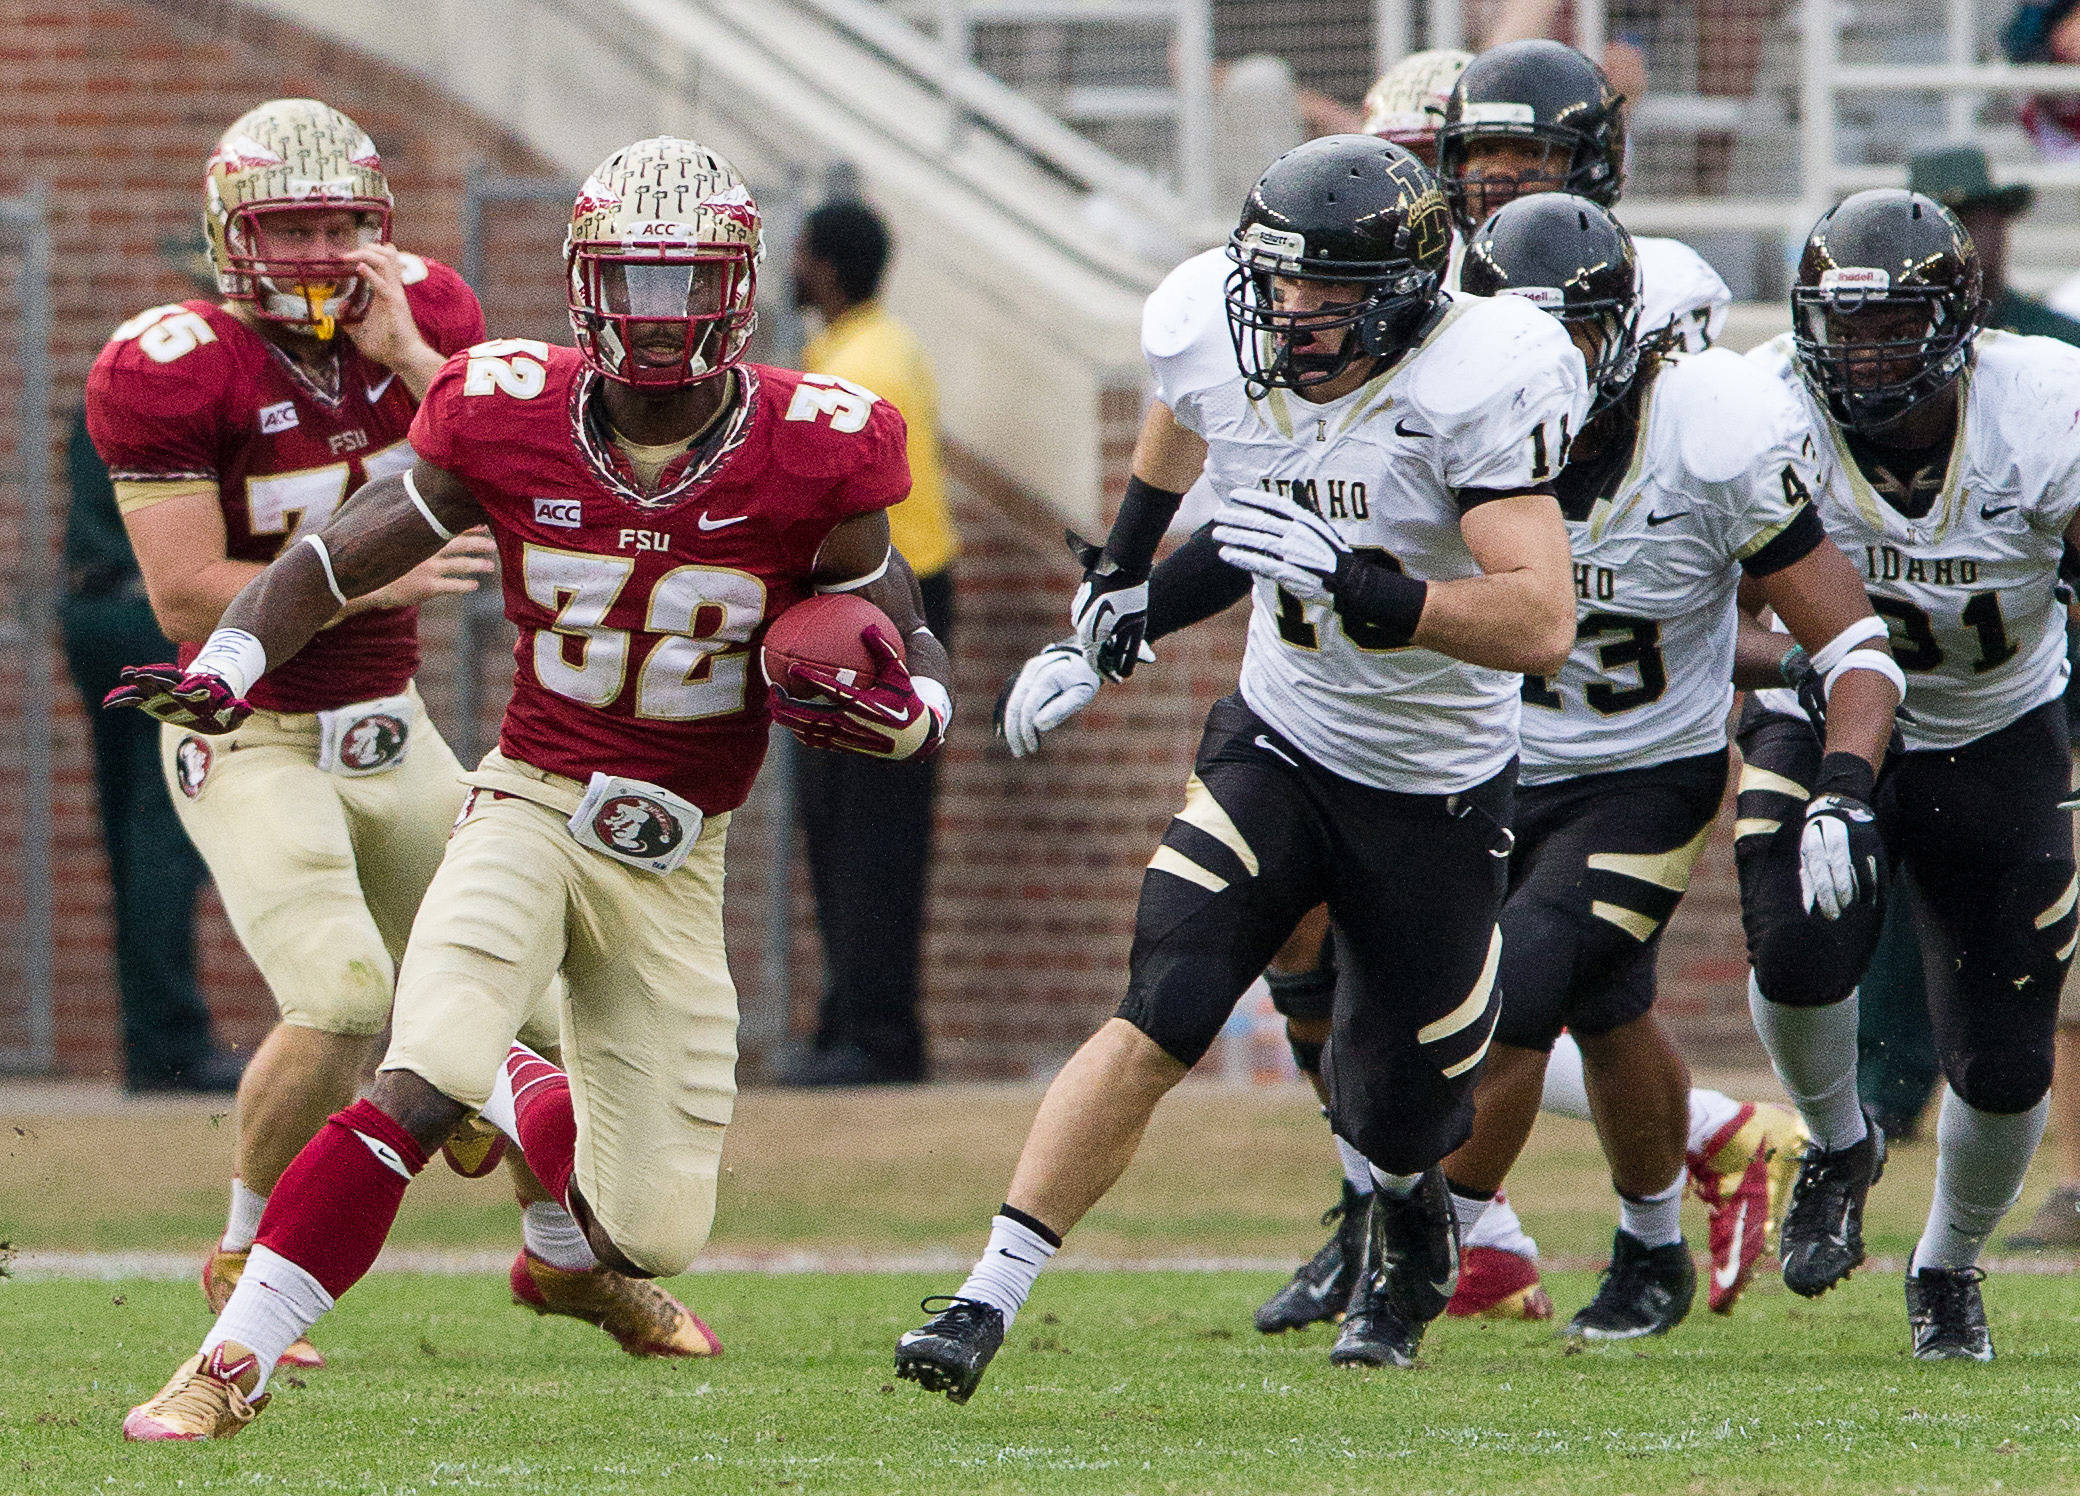 James Wilder, Jr. (32) returns the ball during FSU Football's 80-14 victory over Idaho in Tallahassee, Fla on Saturday, November 23, 2013. Photos by Mike Schwarz.